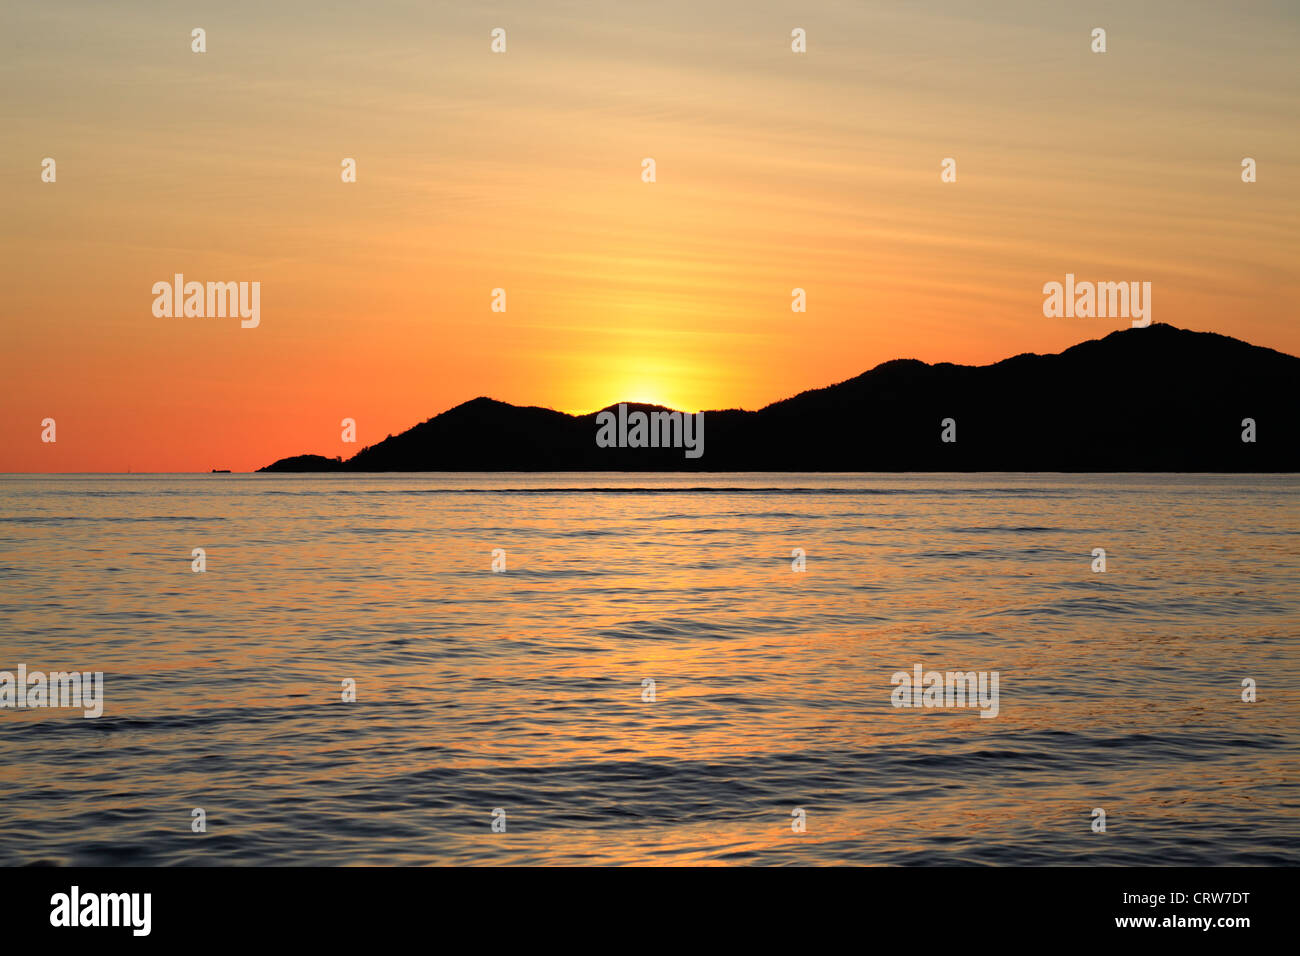 Sun sets behind the island of Praslin as seen from La Digue in the Seychelles - Stock Image